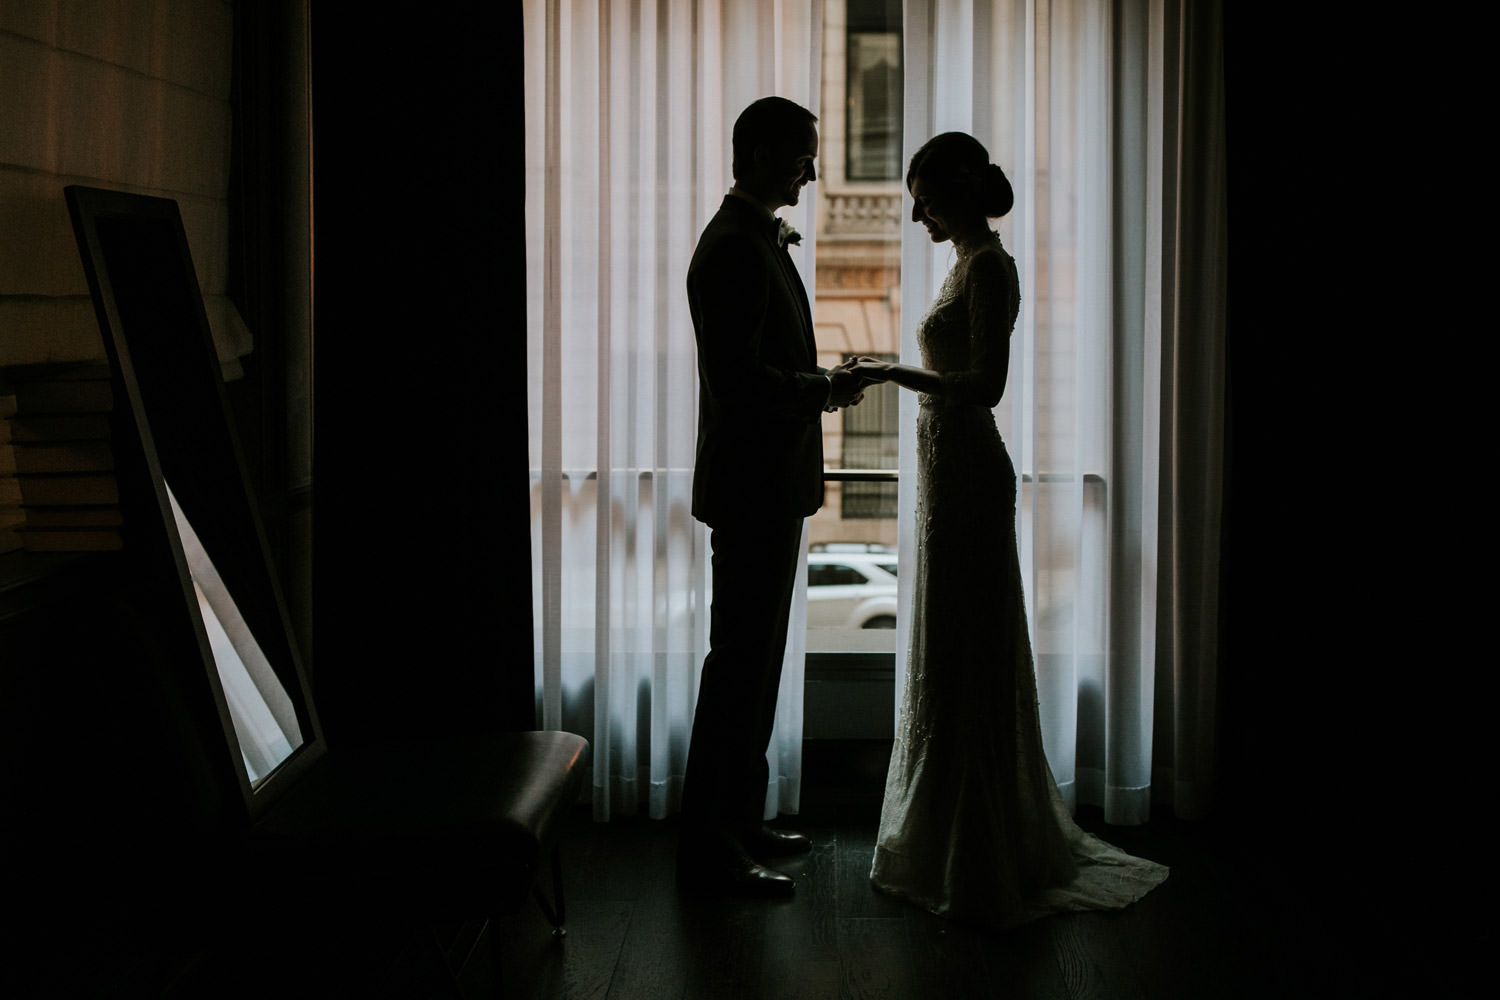 silhouette picture of the bride and groom taken at the gray hotel